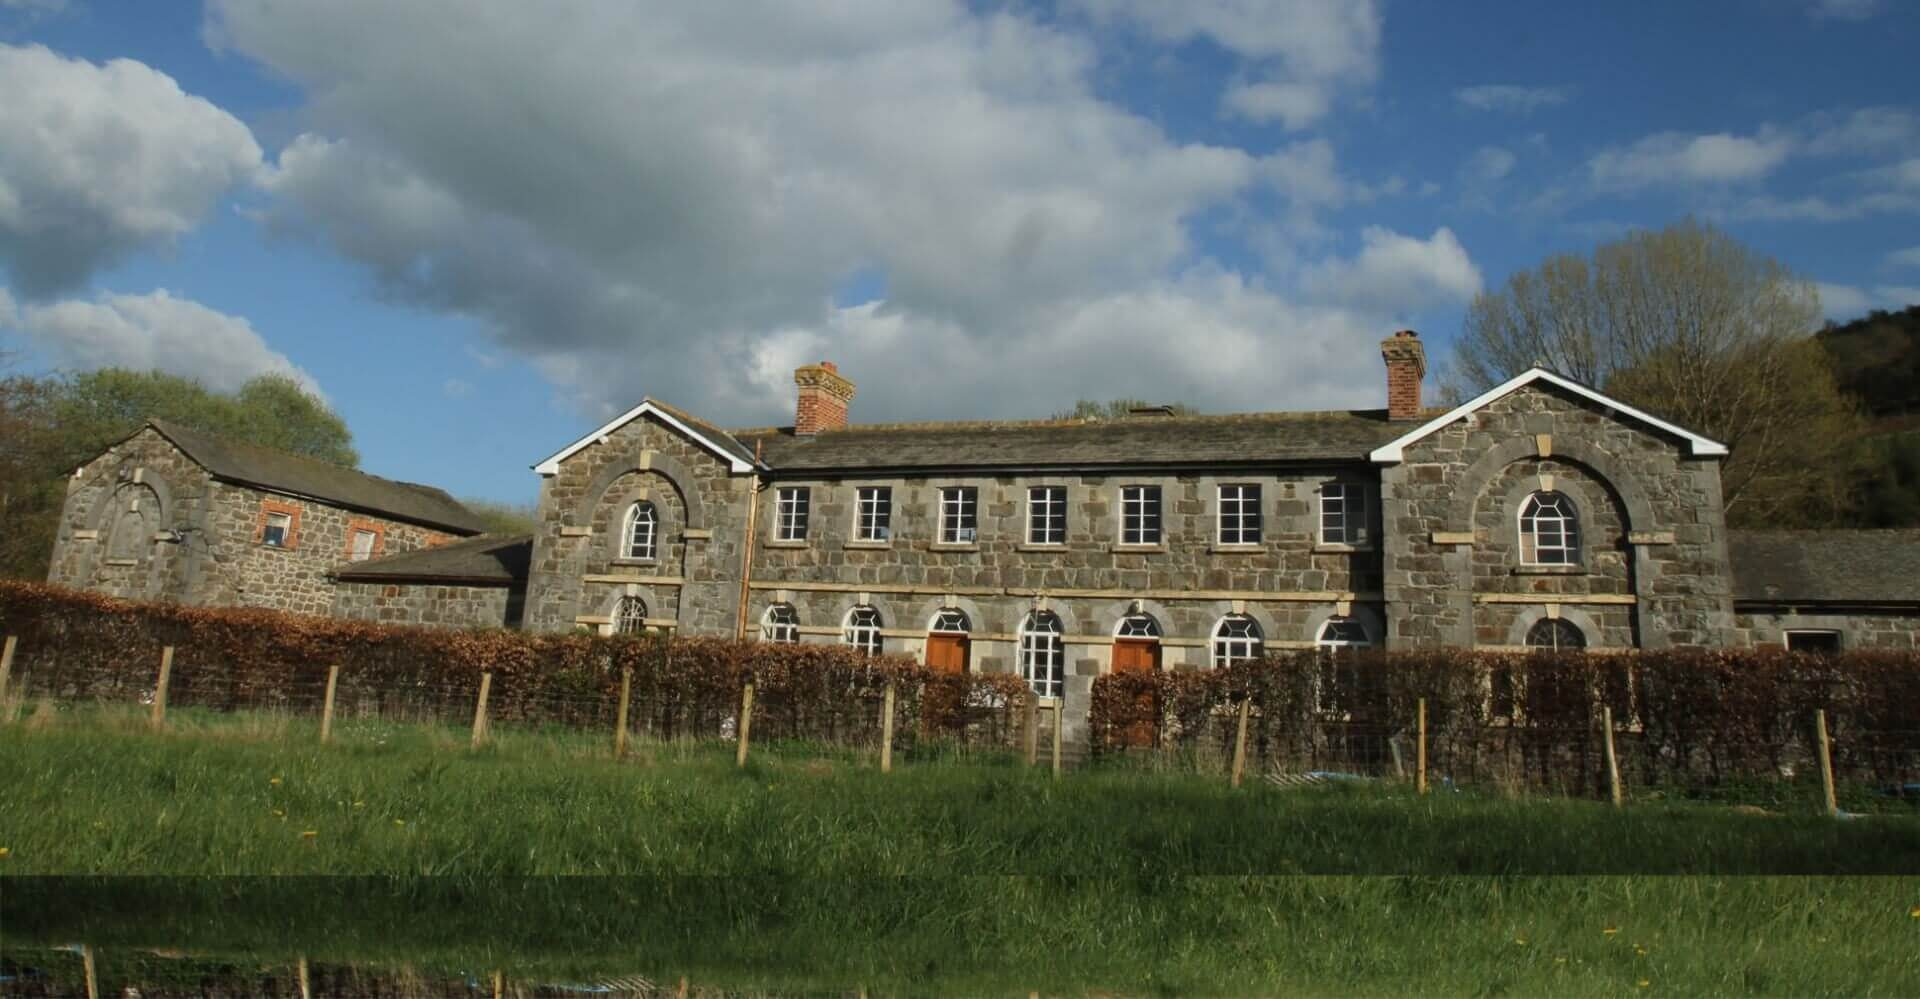 Dolydd workhouse